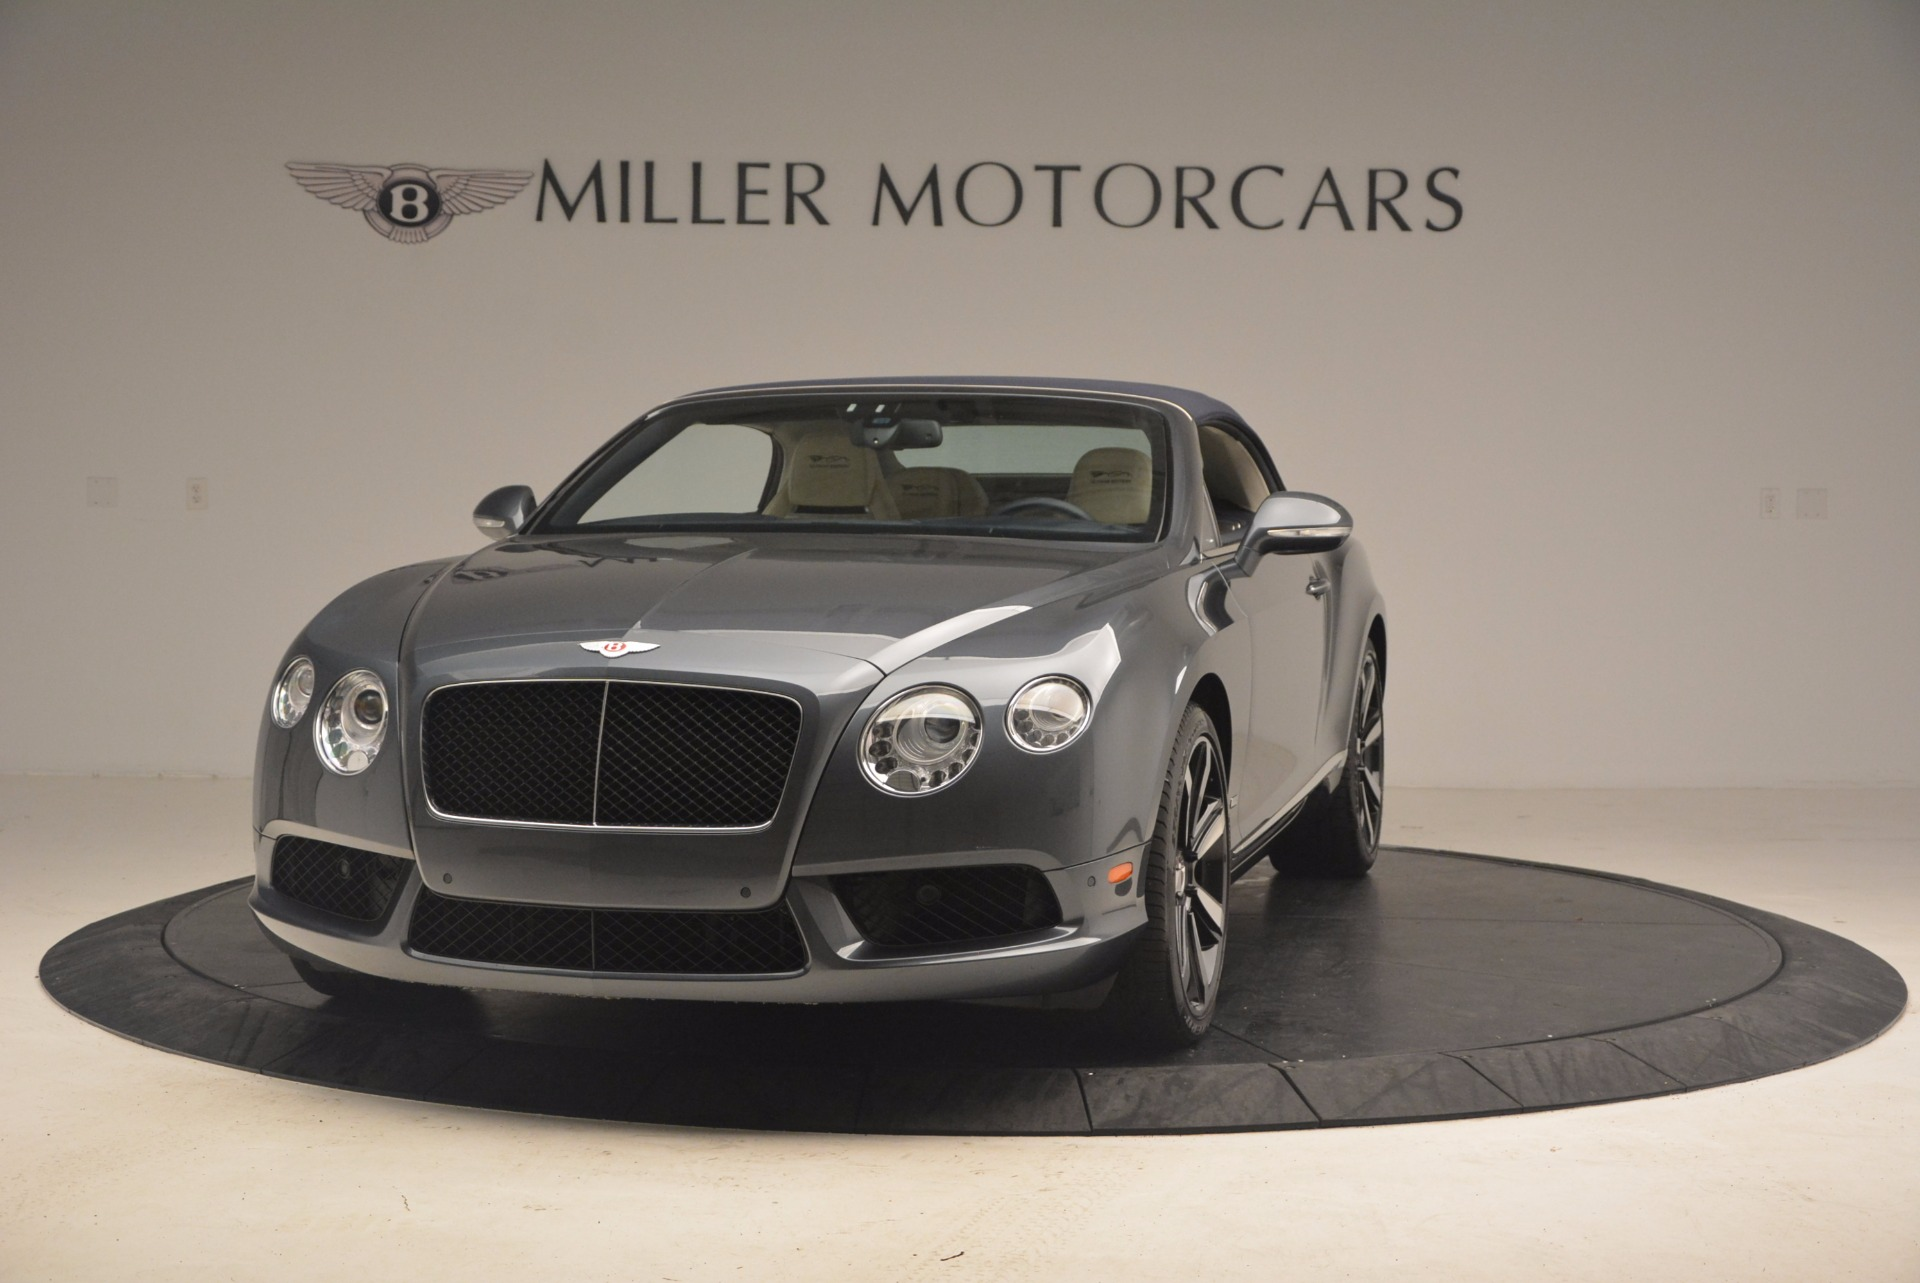 Used 2013 Bentley Continental GT V8 Le Mans Edition, 1 of 48 For Sale In Westport, CT 1288_p14